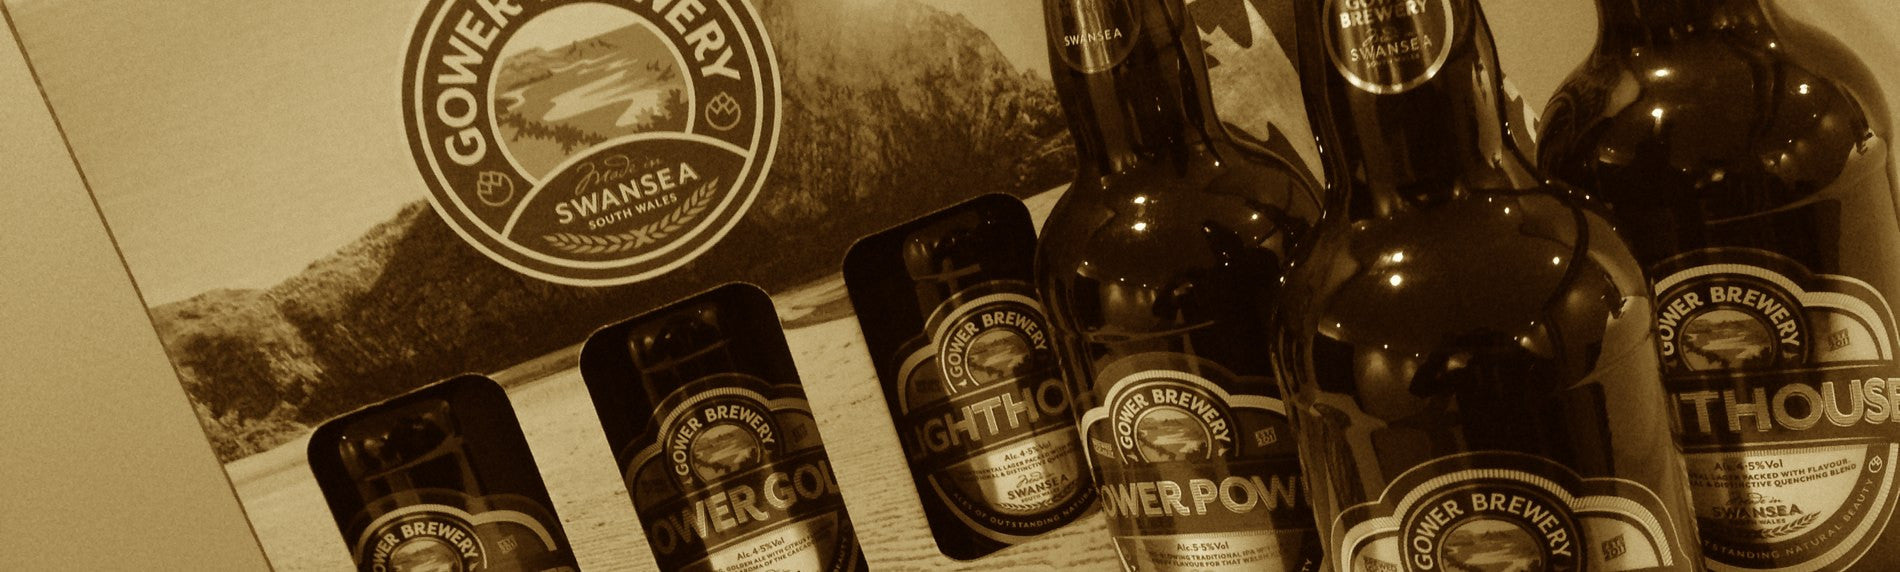 Gower Bottle Selection Gift Pack